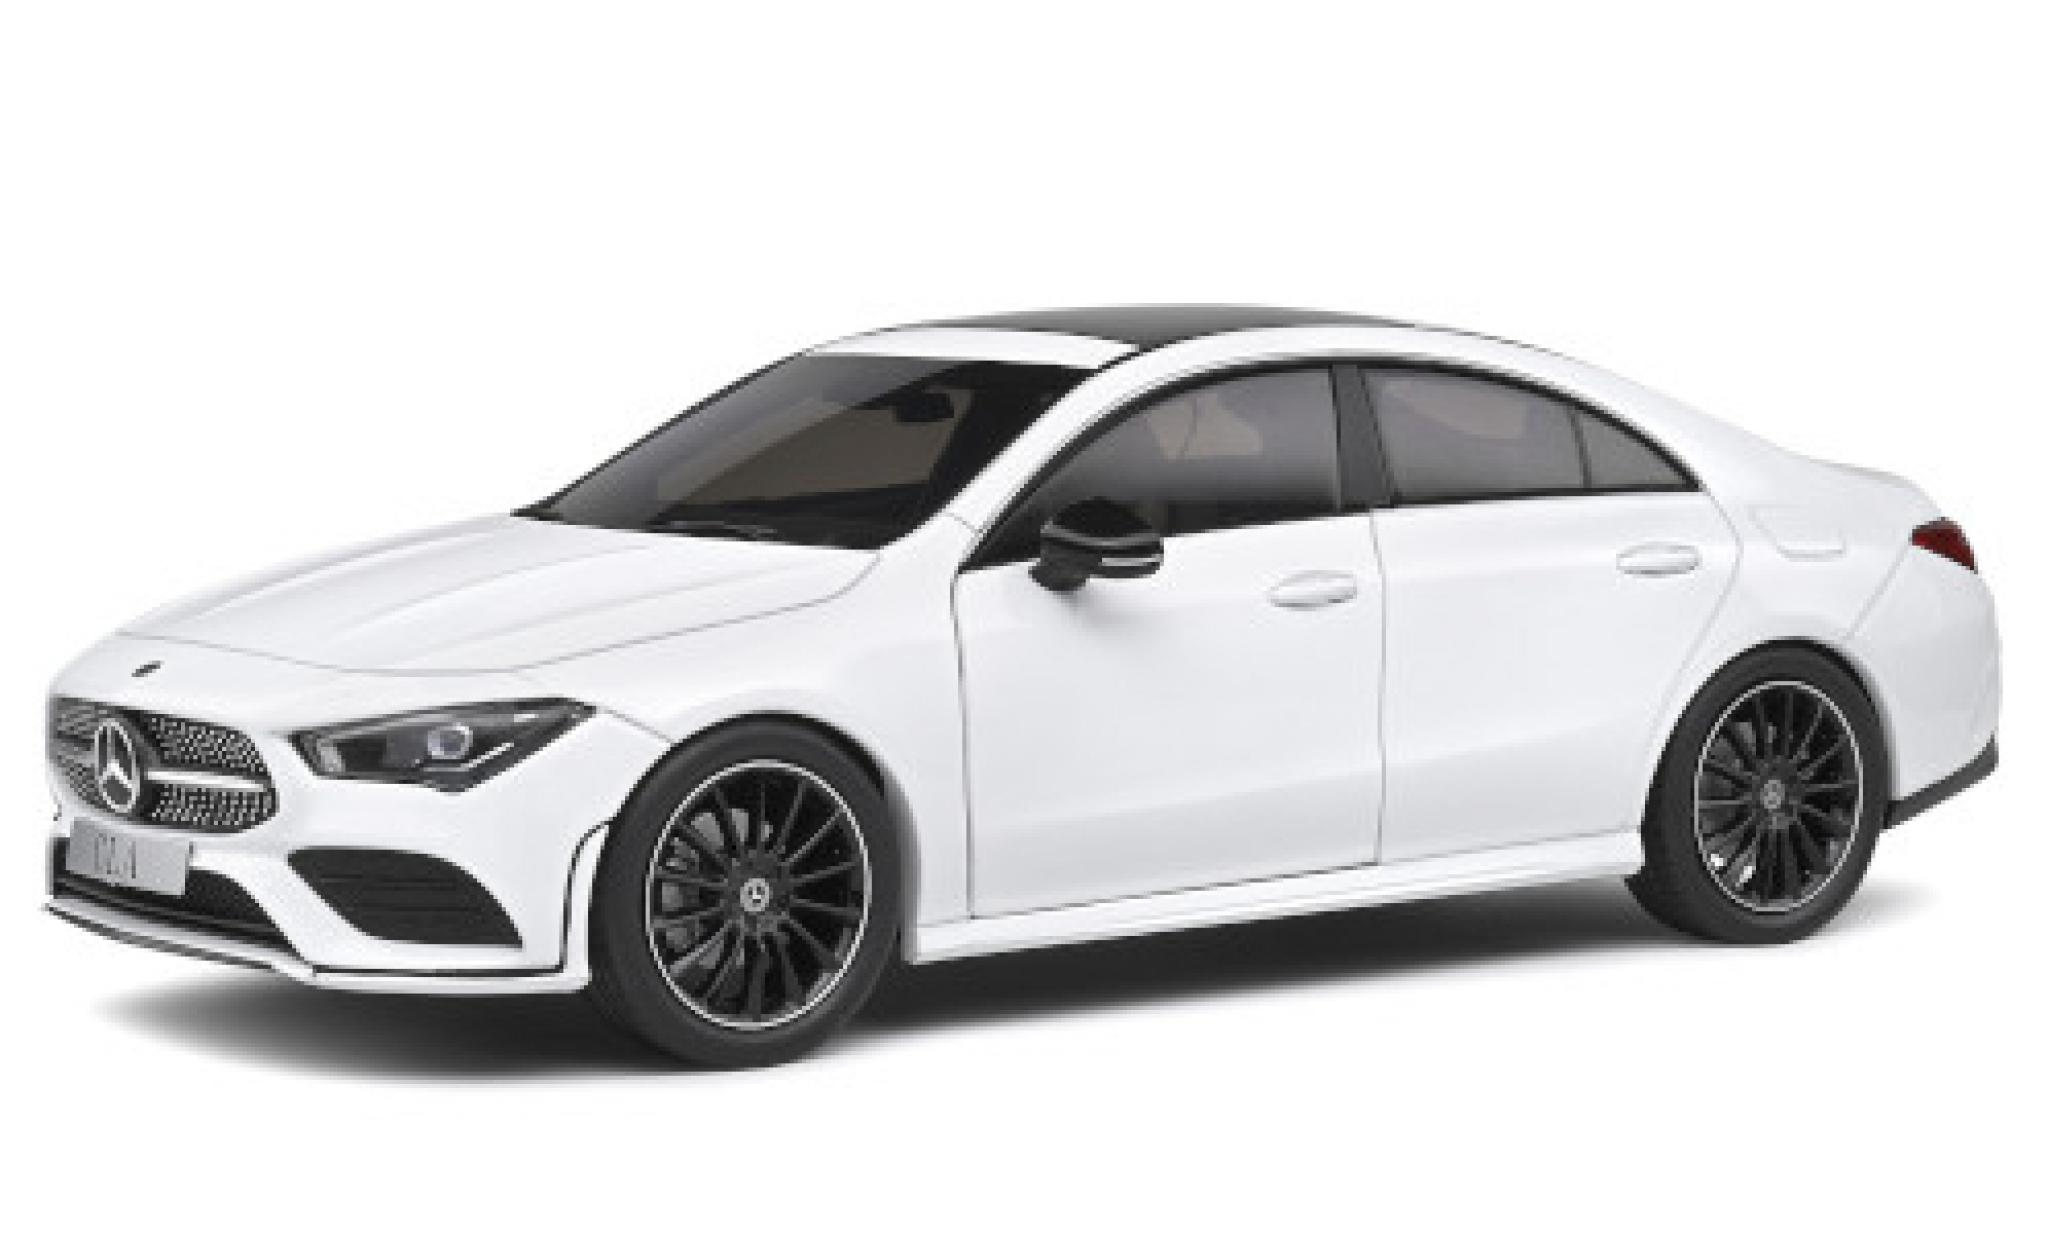 Mercedes CLA 1/18 Solido Coupe AMG Line (C118) blanche 2019